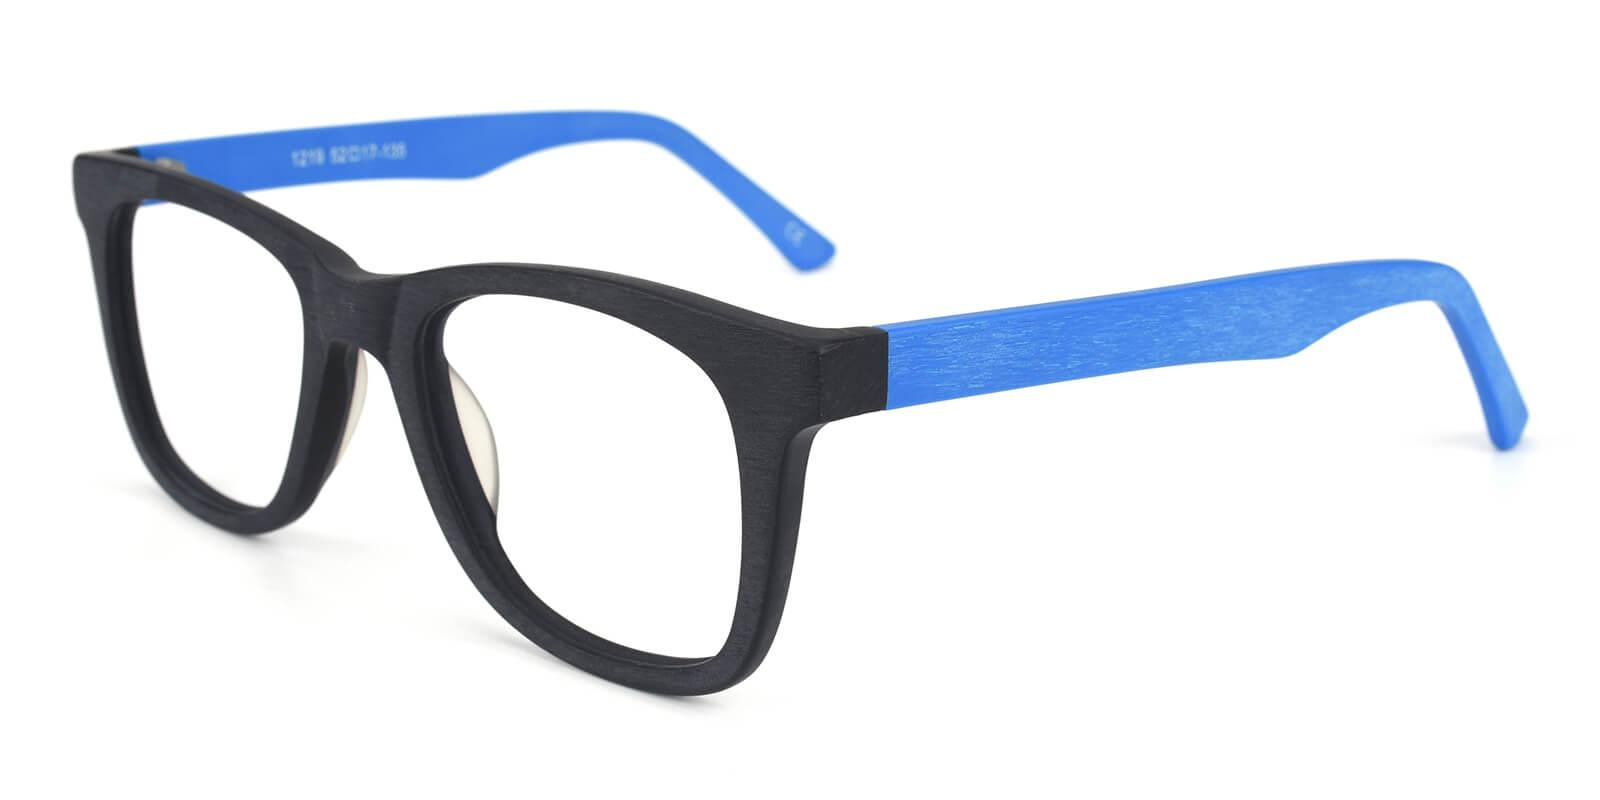 Nashive-Blue-Rectangle-Acetate-Eyeglasses-additional1